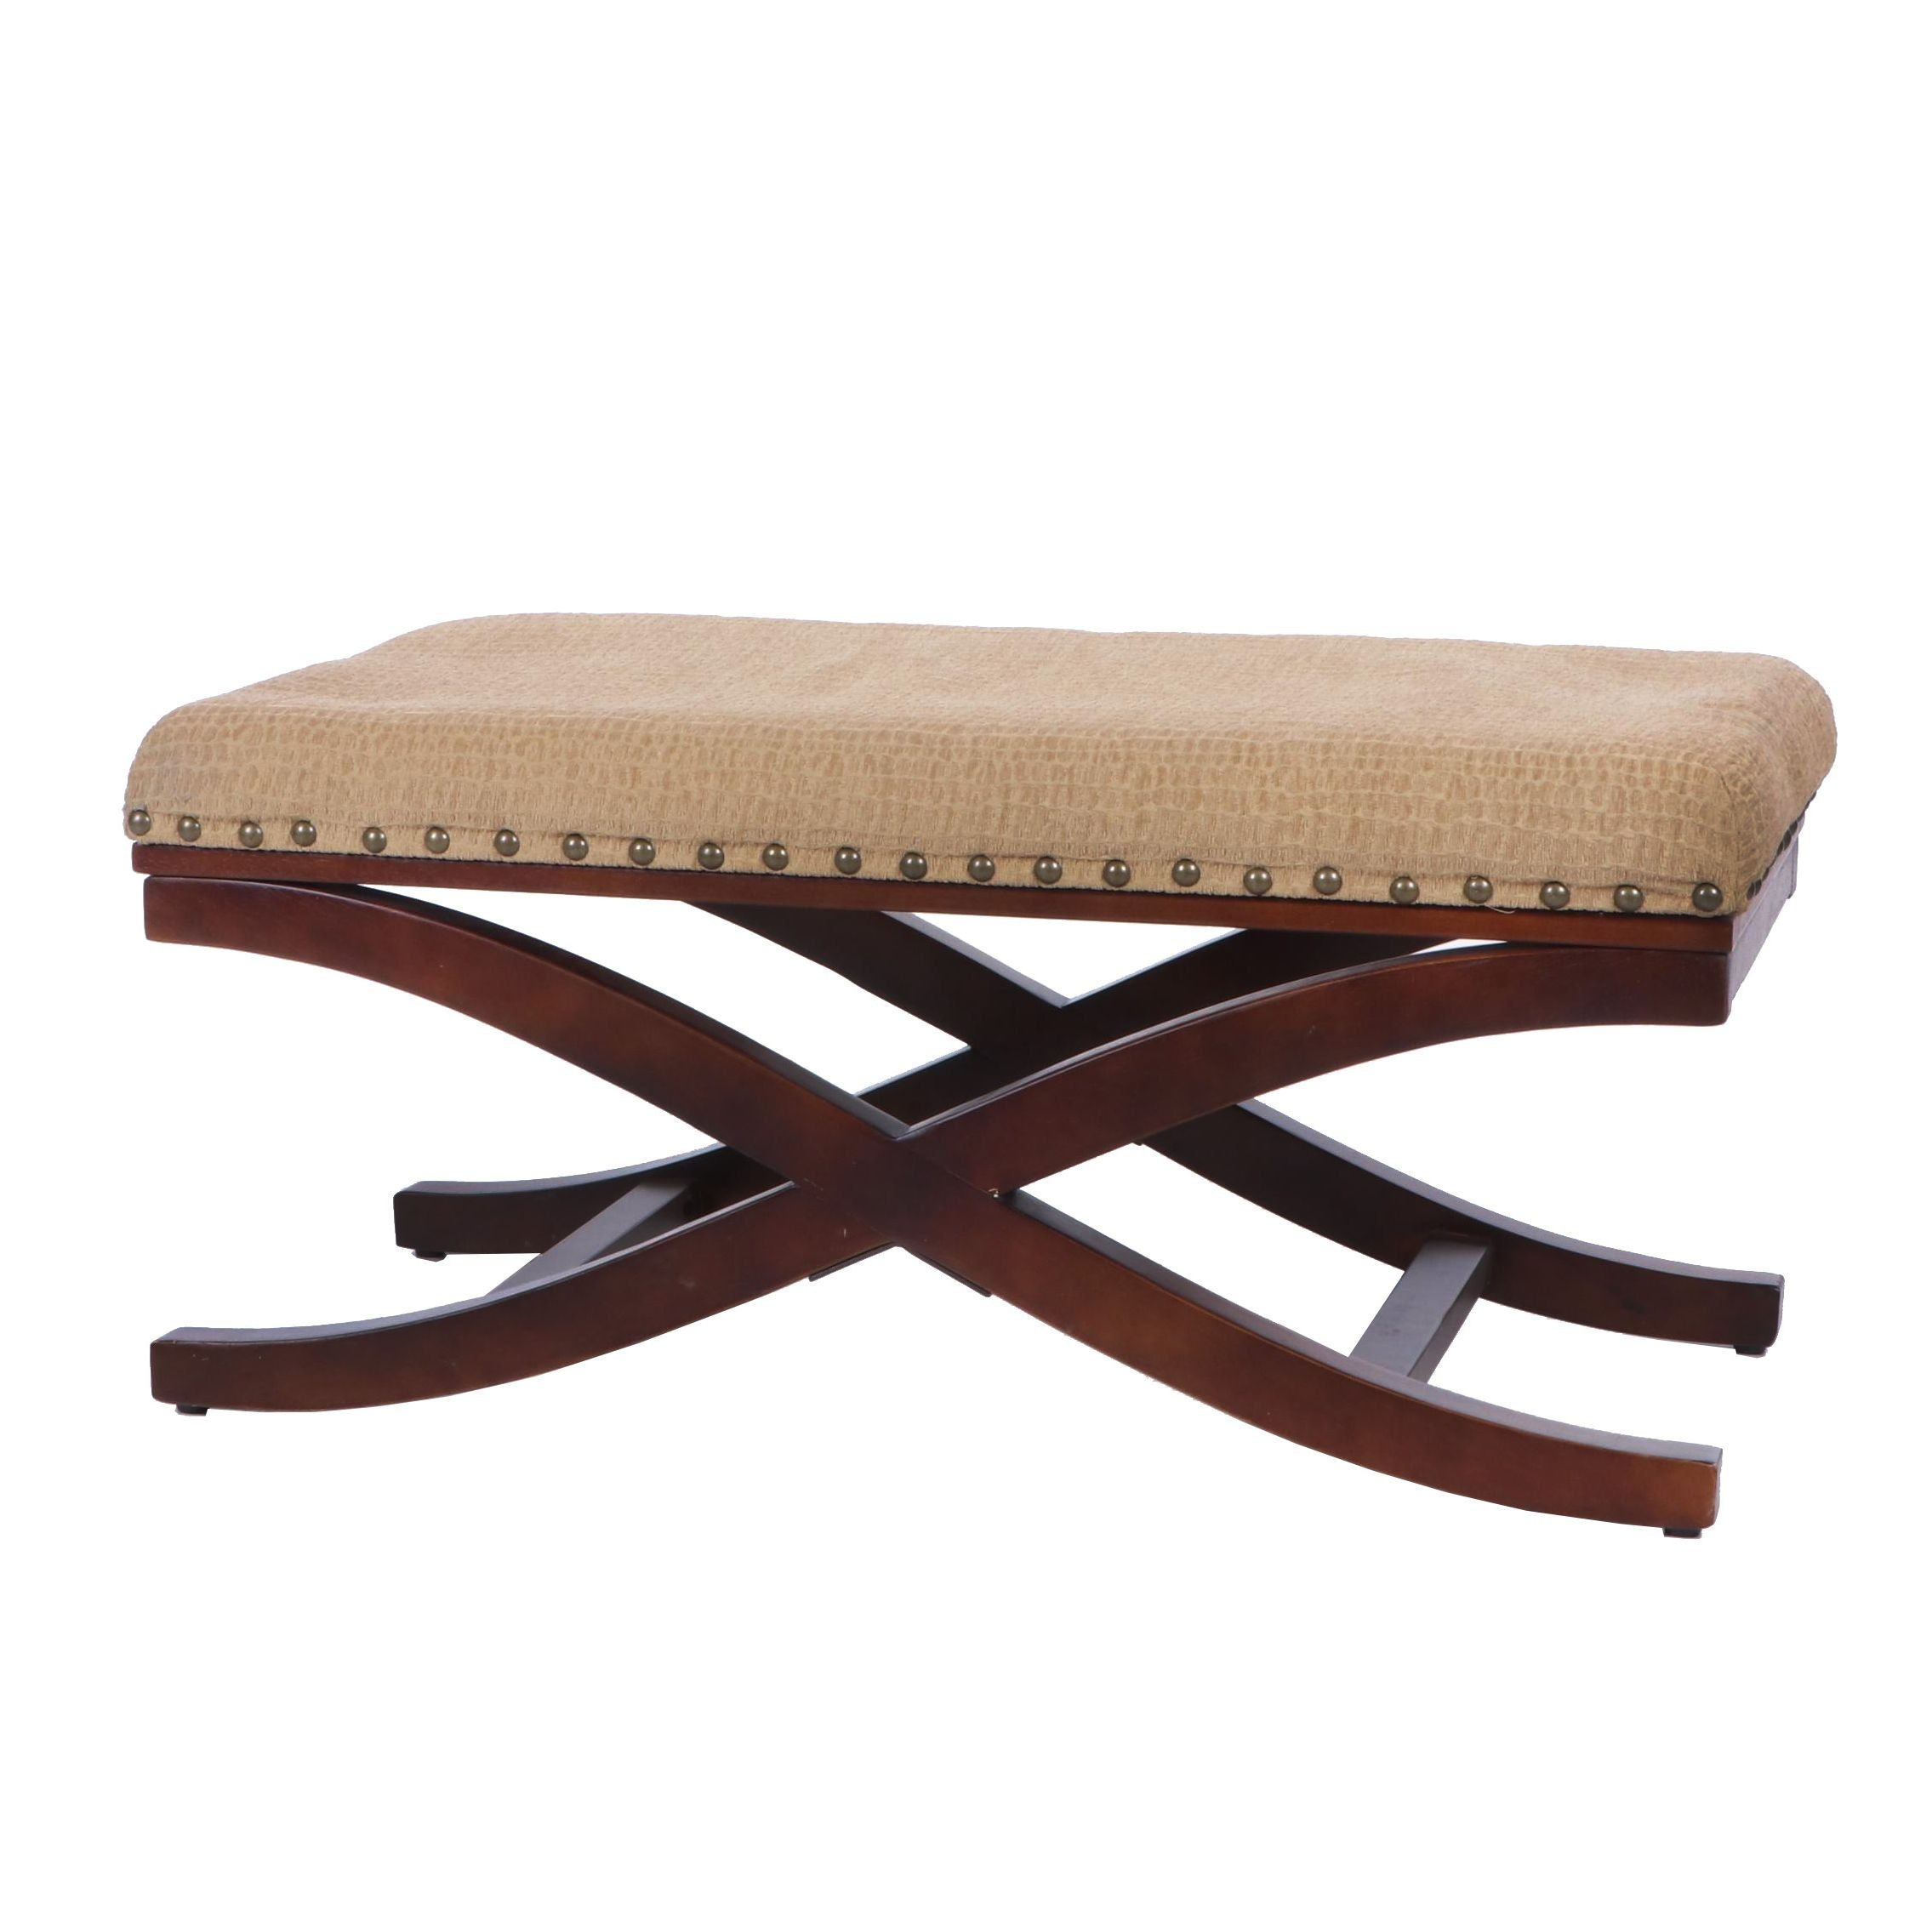 Curule Upholstered Bench by Yi Tong Company, 21st Century